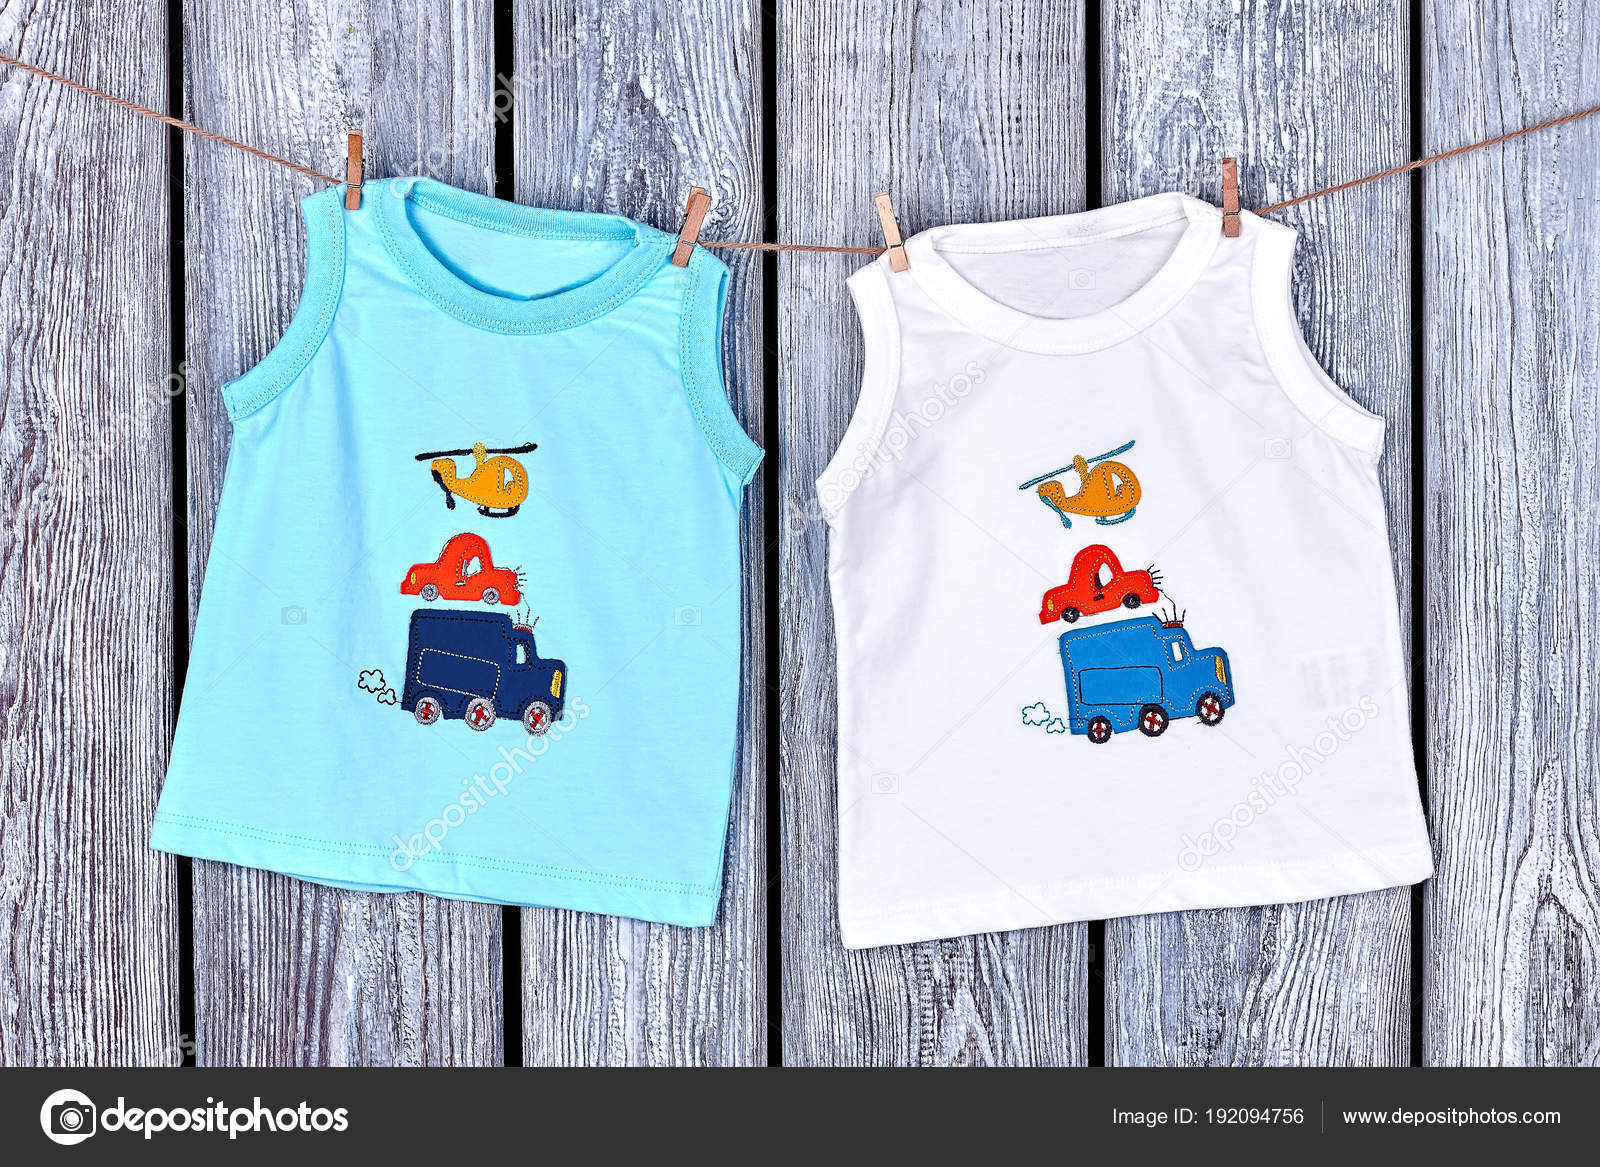 9a20164c6 Infant boy t-shirts hanging on rope. — Stock Photo © Denisfilm ...